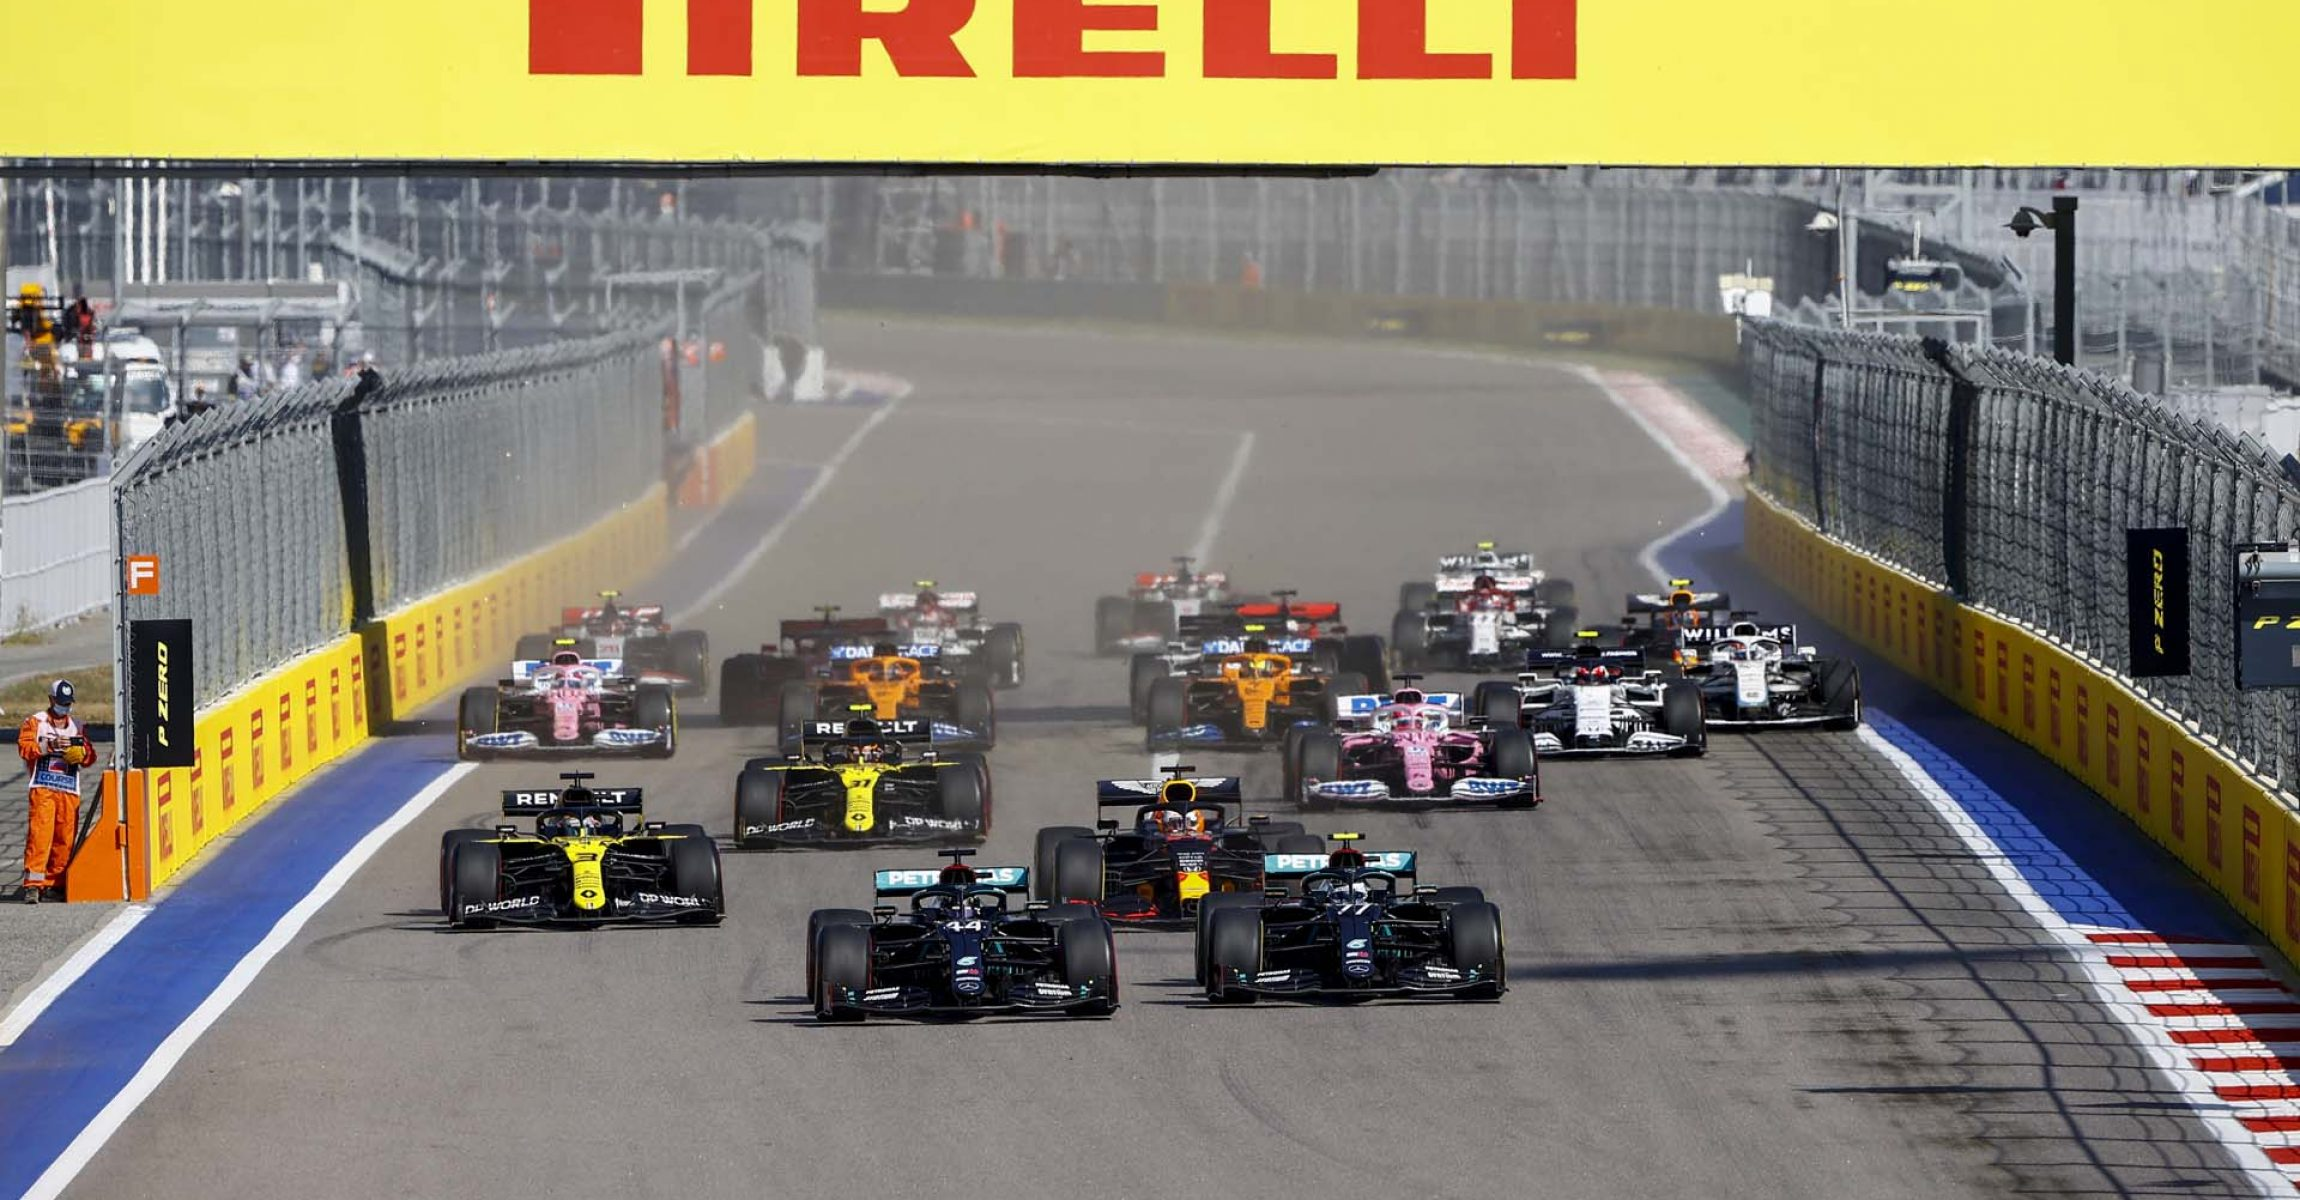 SOCHI AUTODROM, RUSSIAN FEDERATION - SEPTEMBER 27: Lewis Hamilton, Mercedes F1 W11 EQ Performance leads Valtteri Bottas, Mercedes F1 W11 EQ Performance, Max Verstappen, Red Bull Racing RB16 and Daniel Ricciardo, Renault R.S.20 at the start of the race during the Russian GP at Sochi Autodrom on Sunday September 27, 2020 in Sochi, Russian Federation. (Photo by Andy Hone / LAT Images)